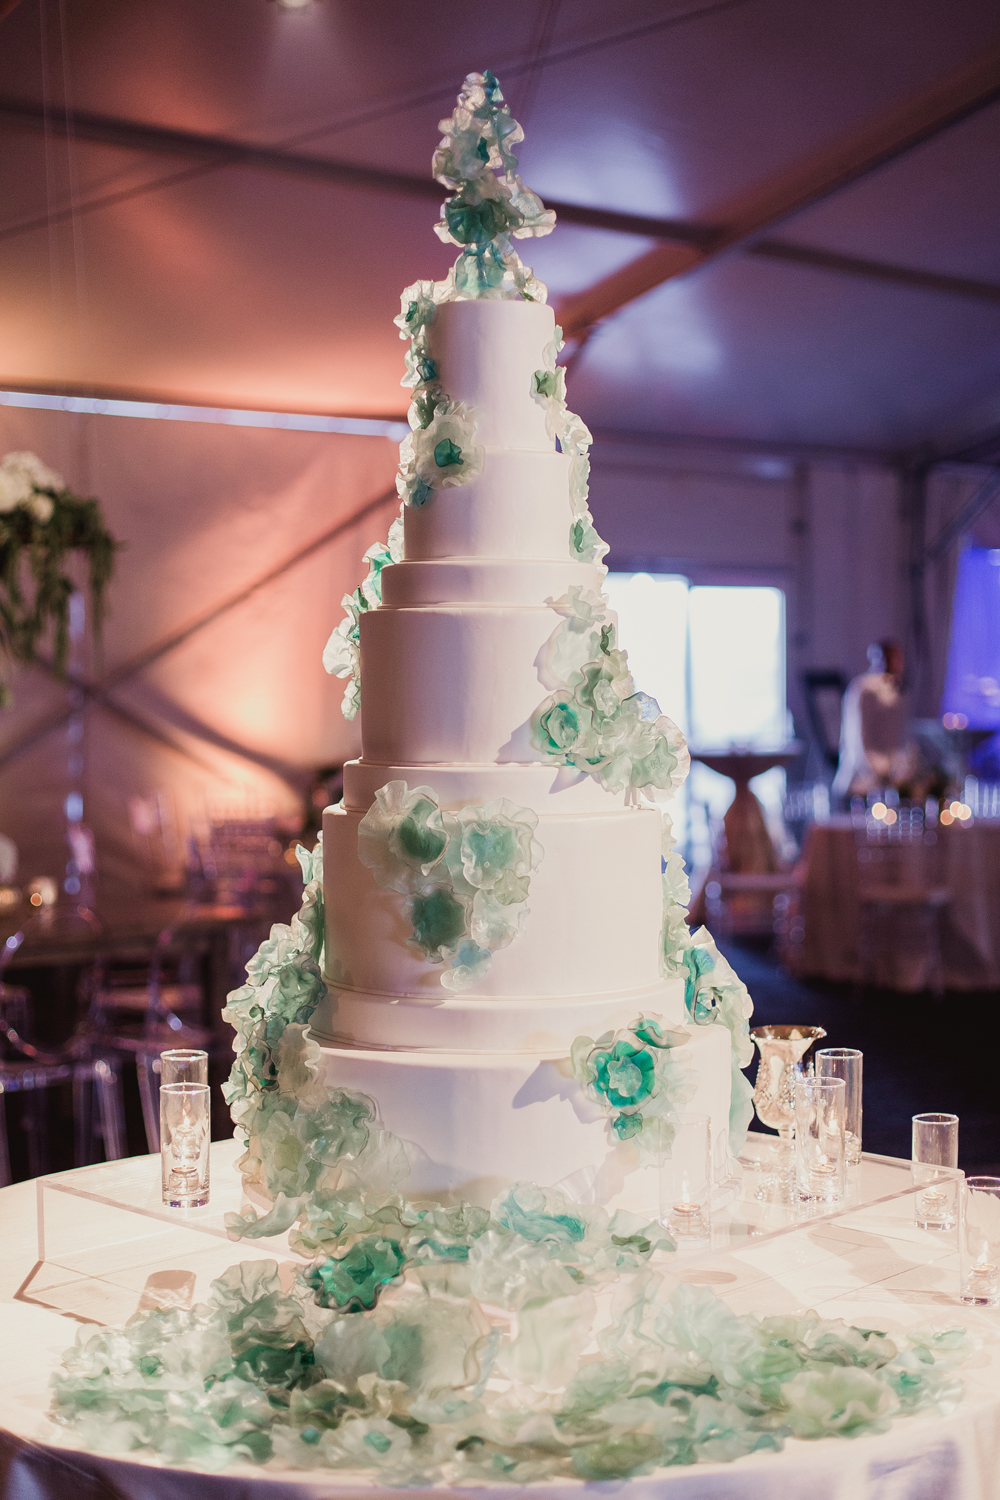 Wedding Cake Ideas  Nontraditional Wedding Cake Decorations and     White tall wedding cake with blue and green clear flower designs art  inspired